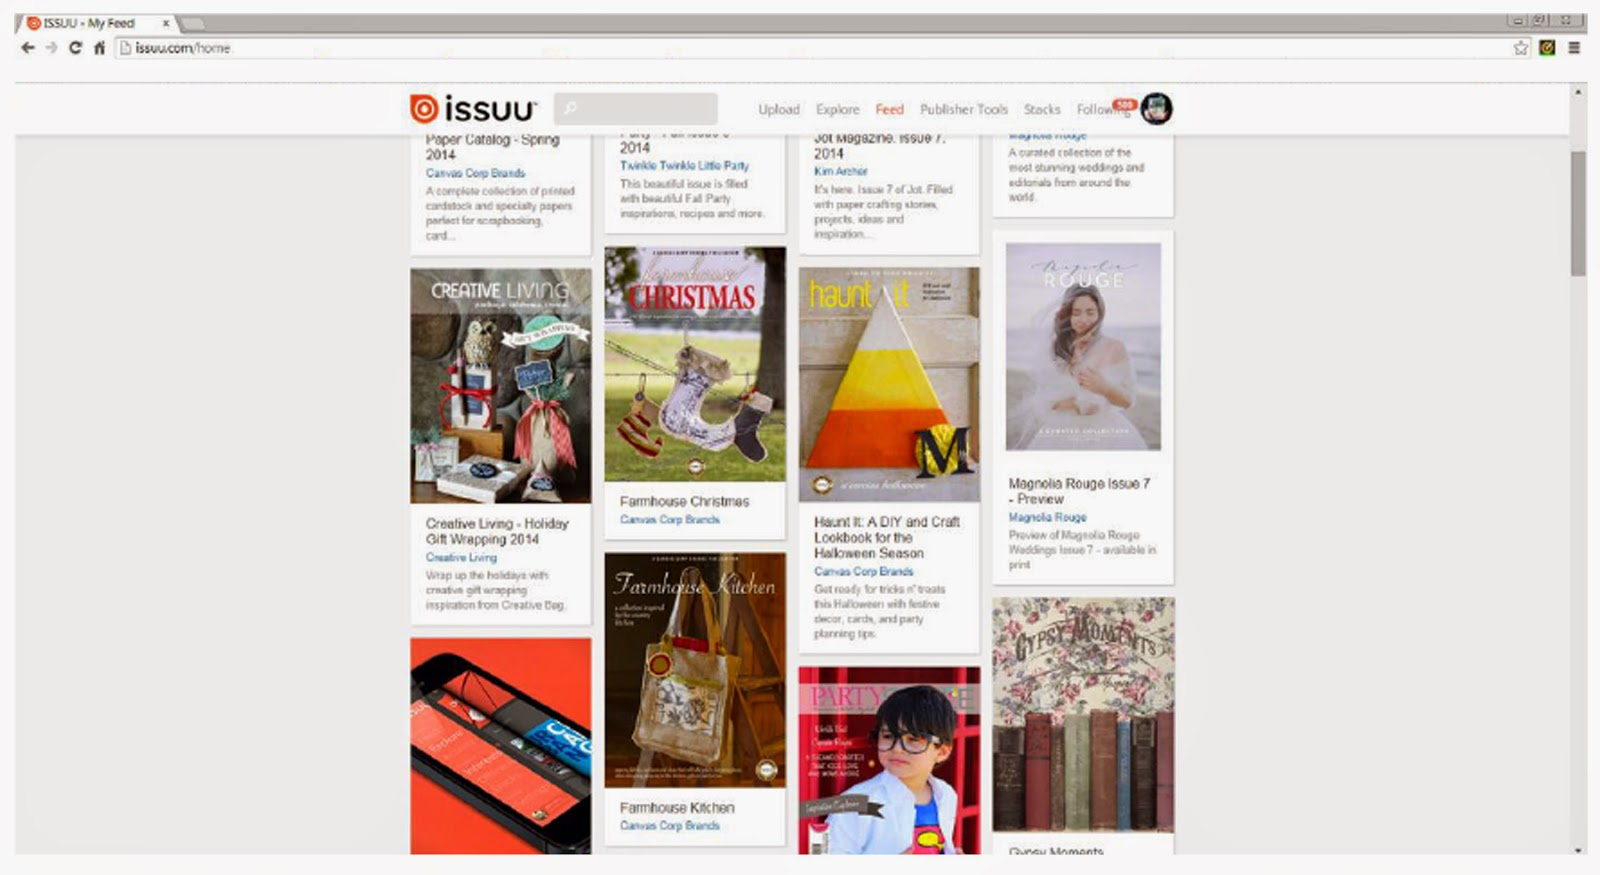 Creative Living Magazine by Creative Bag - see it on ISSUU